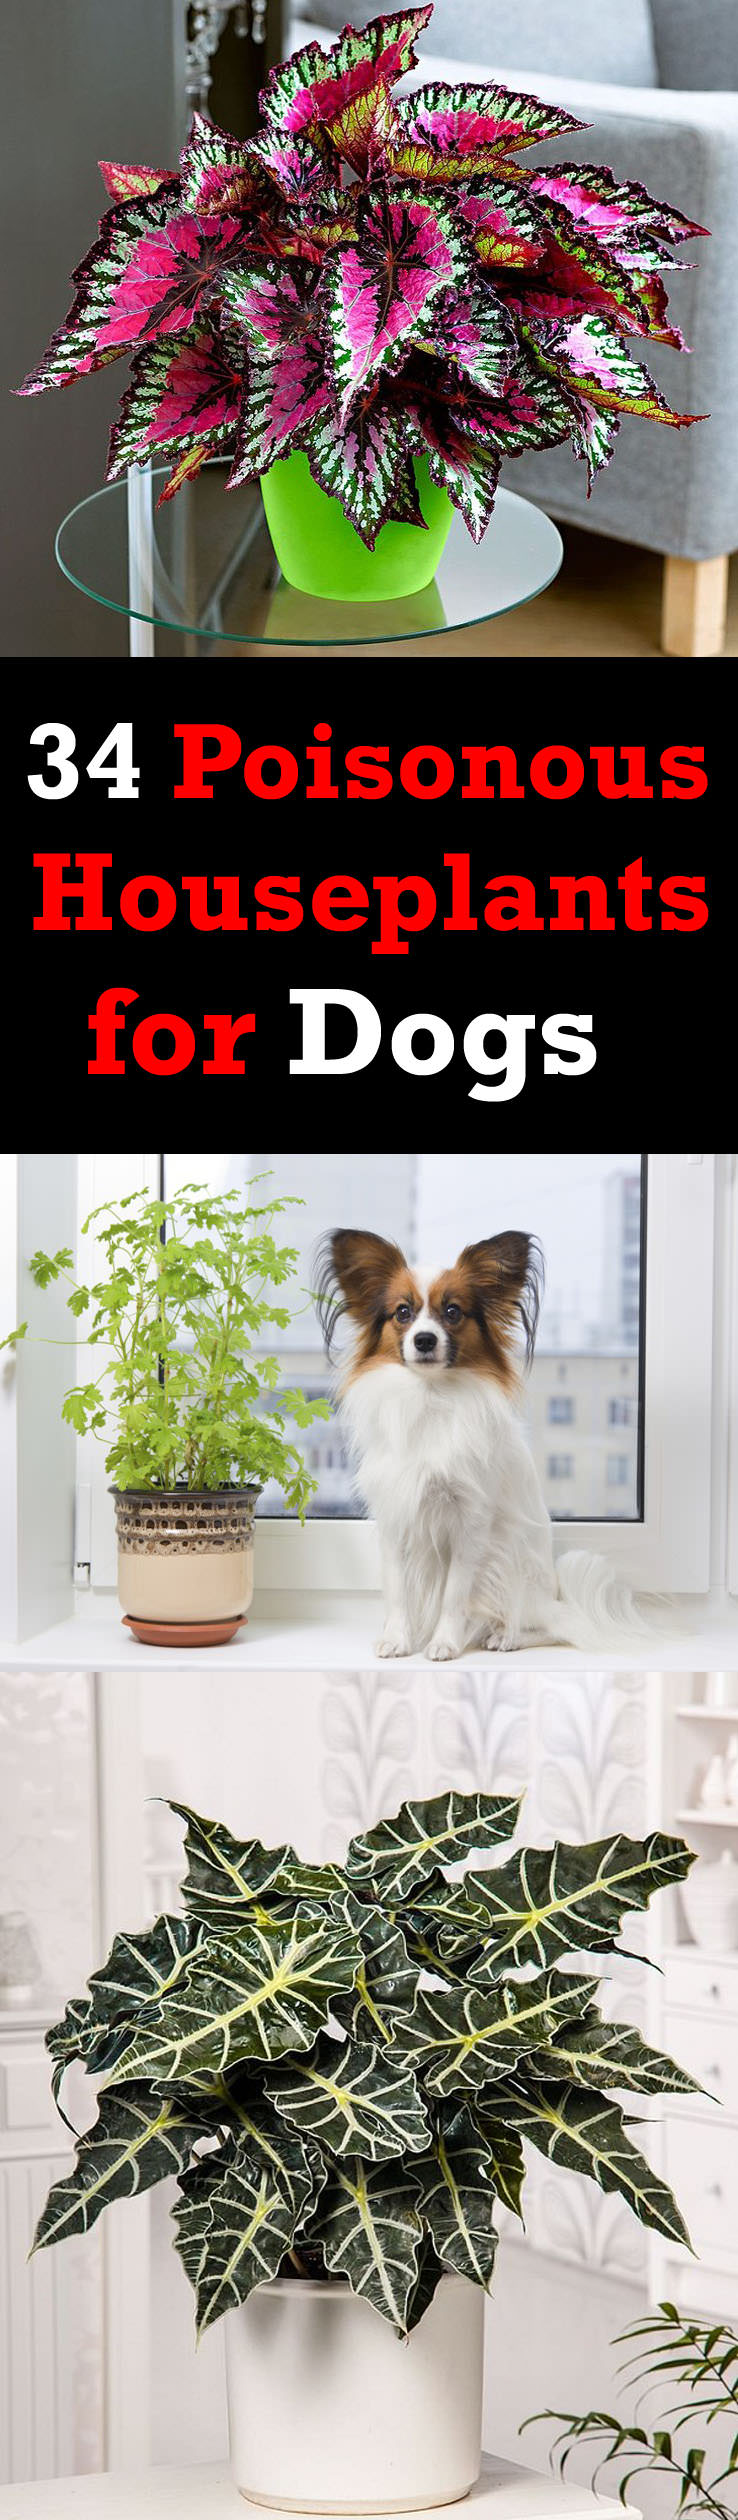 There are poisonous houseplants for dogs and cats. Some are mildly poisonous and some are fatal. It is better to know about them if you own a pet!